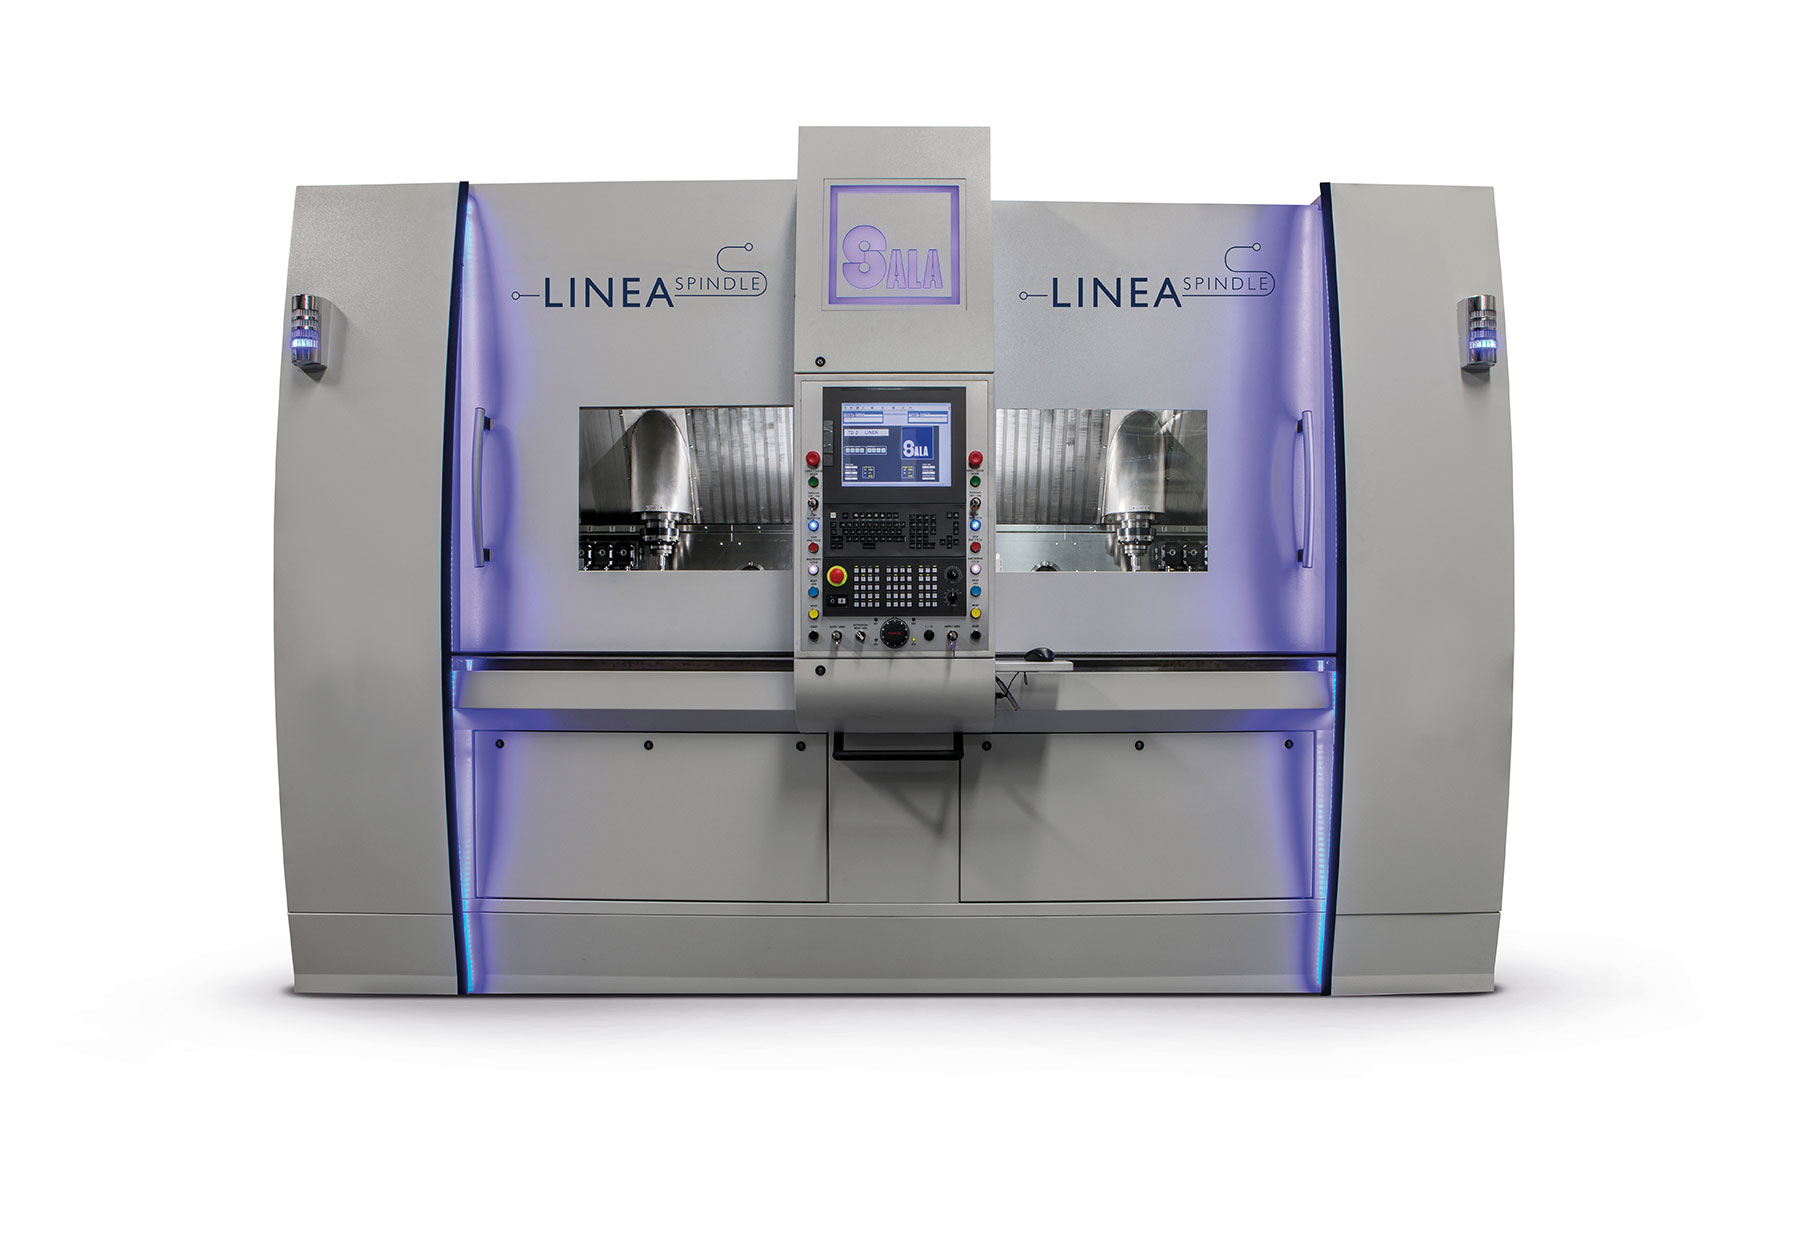 Sala srl - linea spindle - linear multi-spindle - numerically controlled - CNC